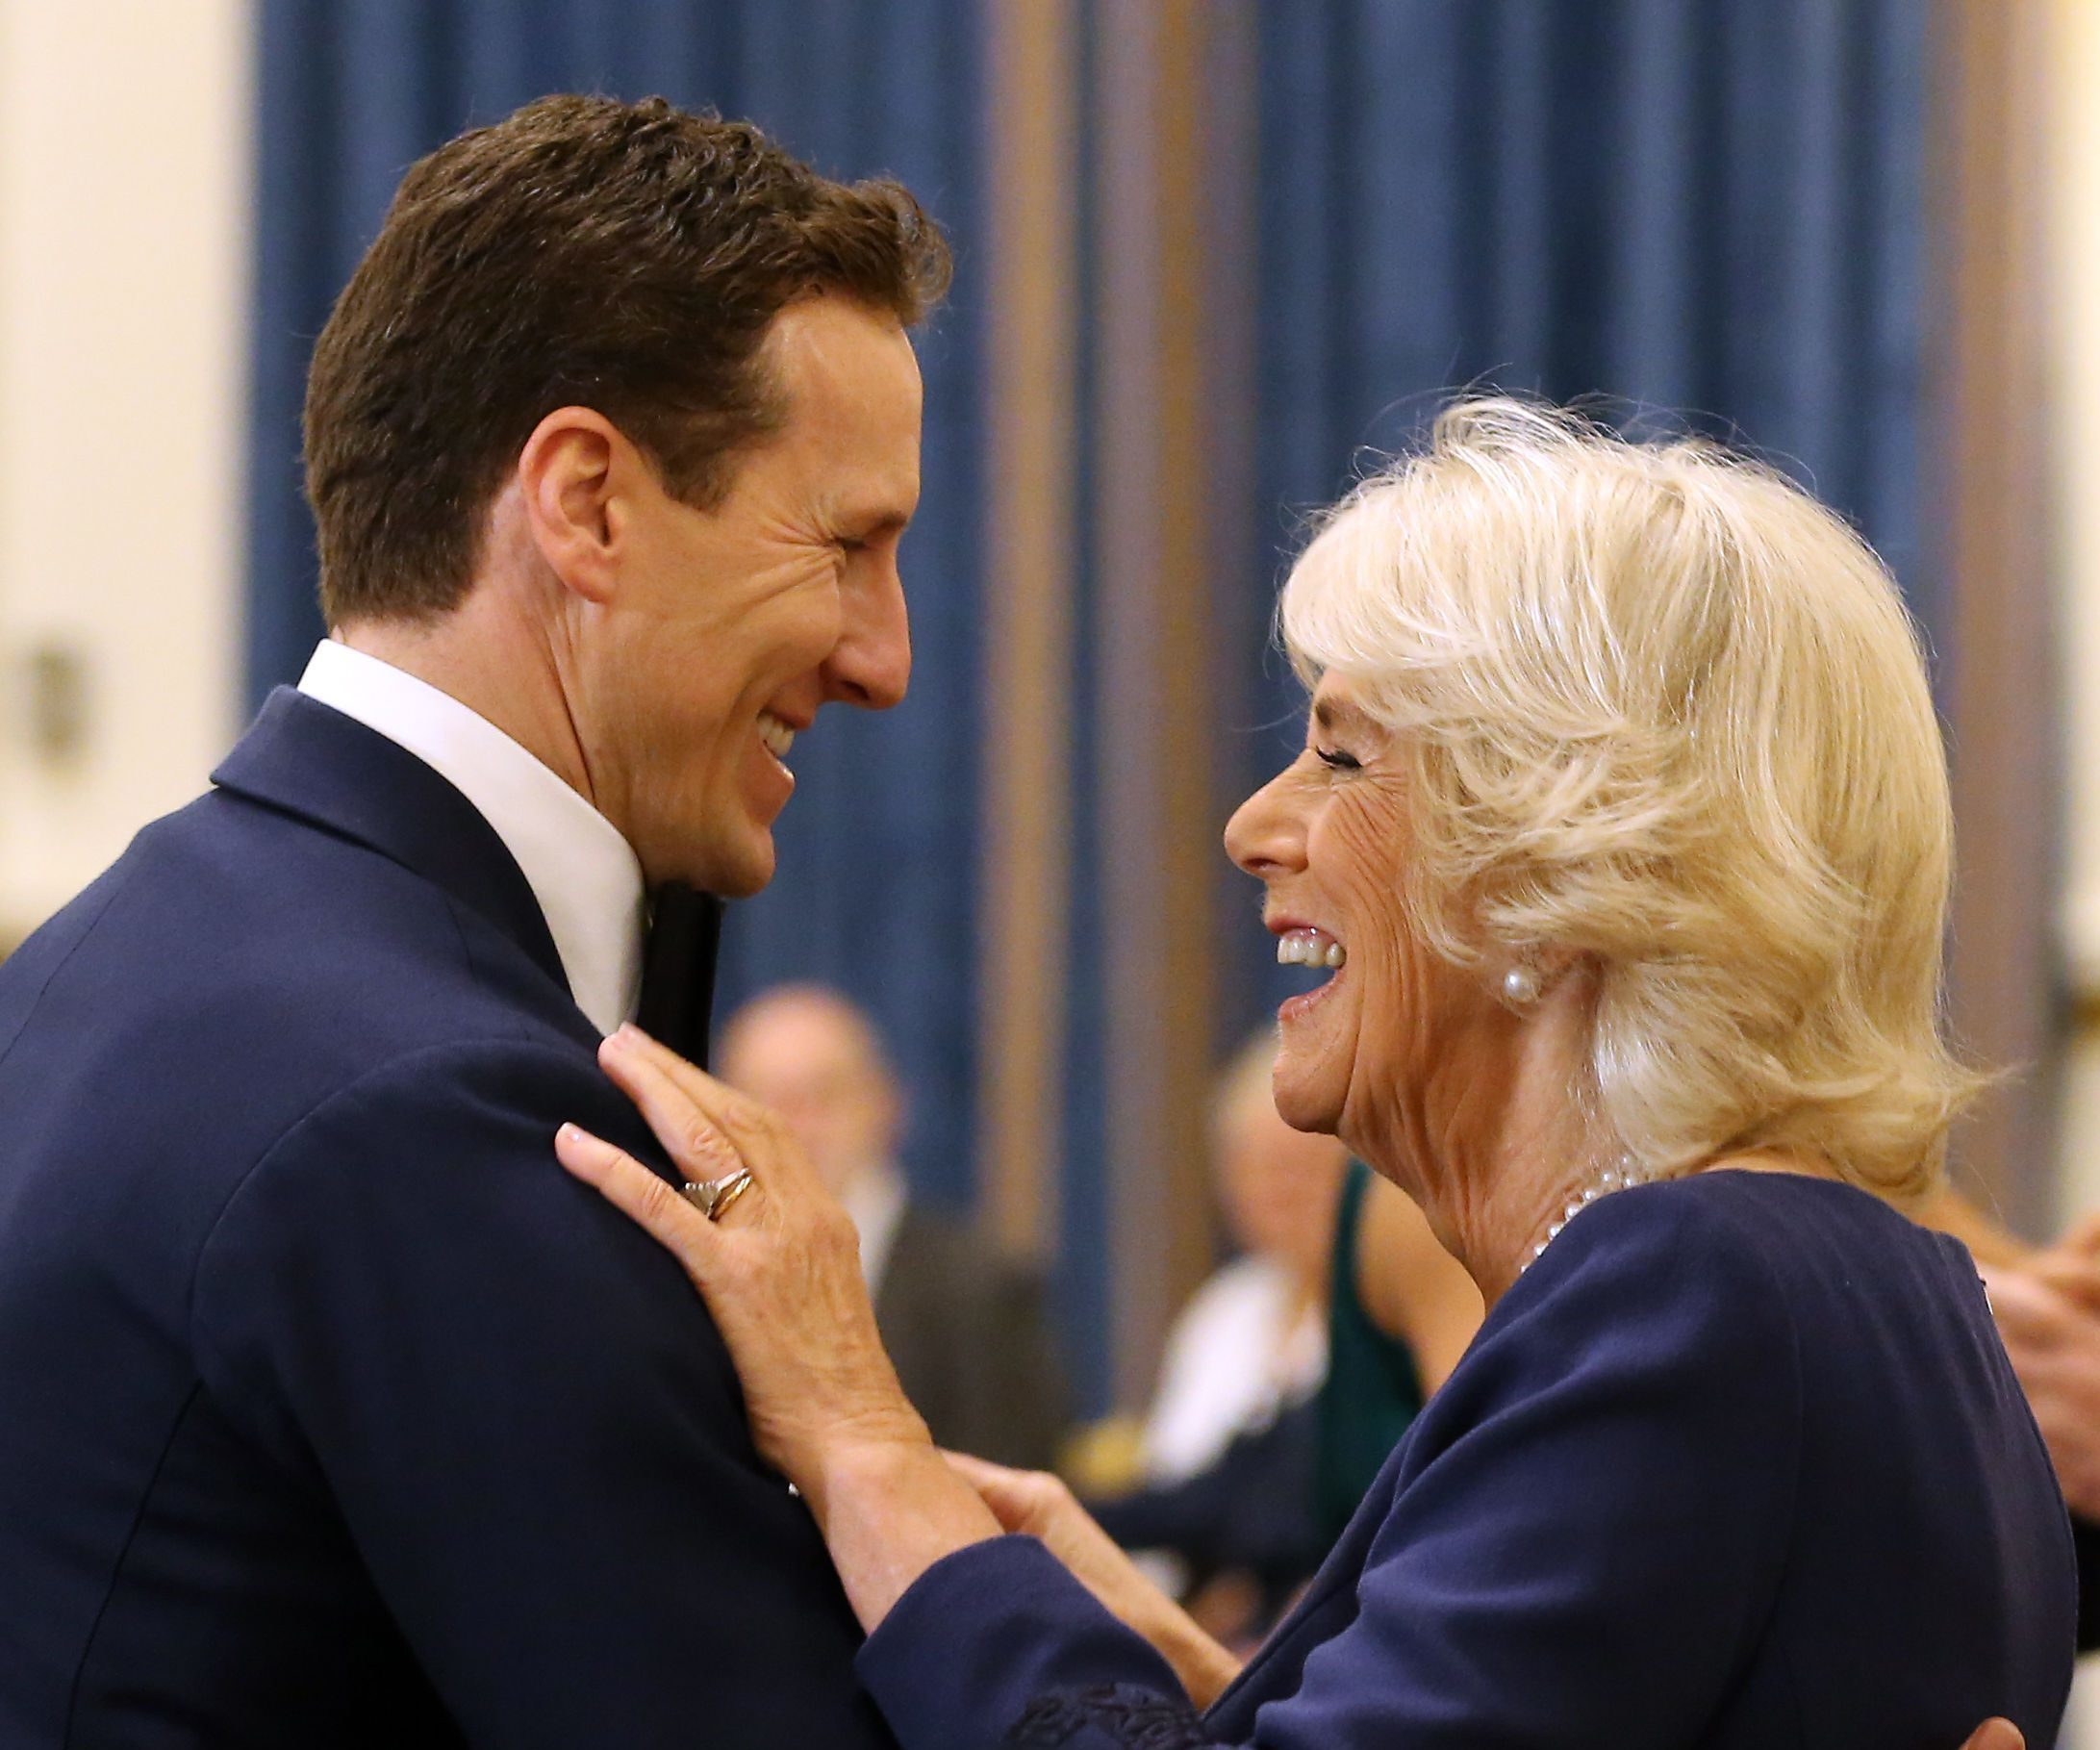 The Duchess of Cornwall, President of the National Osteoporosis Society, dances with 'Strictly Come Dancing' professional dancer Brendan Cole as she hosts a tea dance at Buckingham Palace in London to highlight the benefits for older people of staying active. (Gareth Fuller/PA Wire)